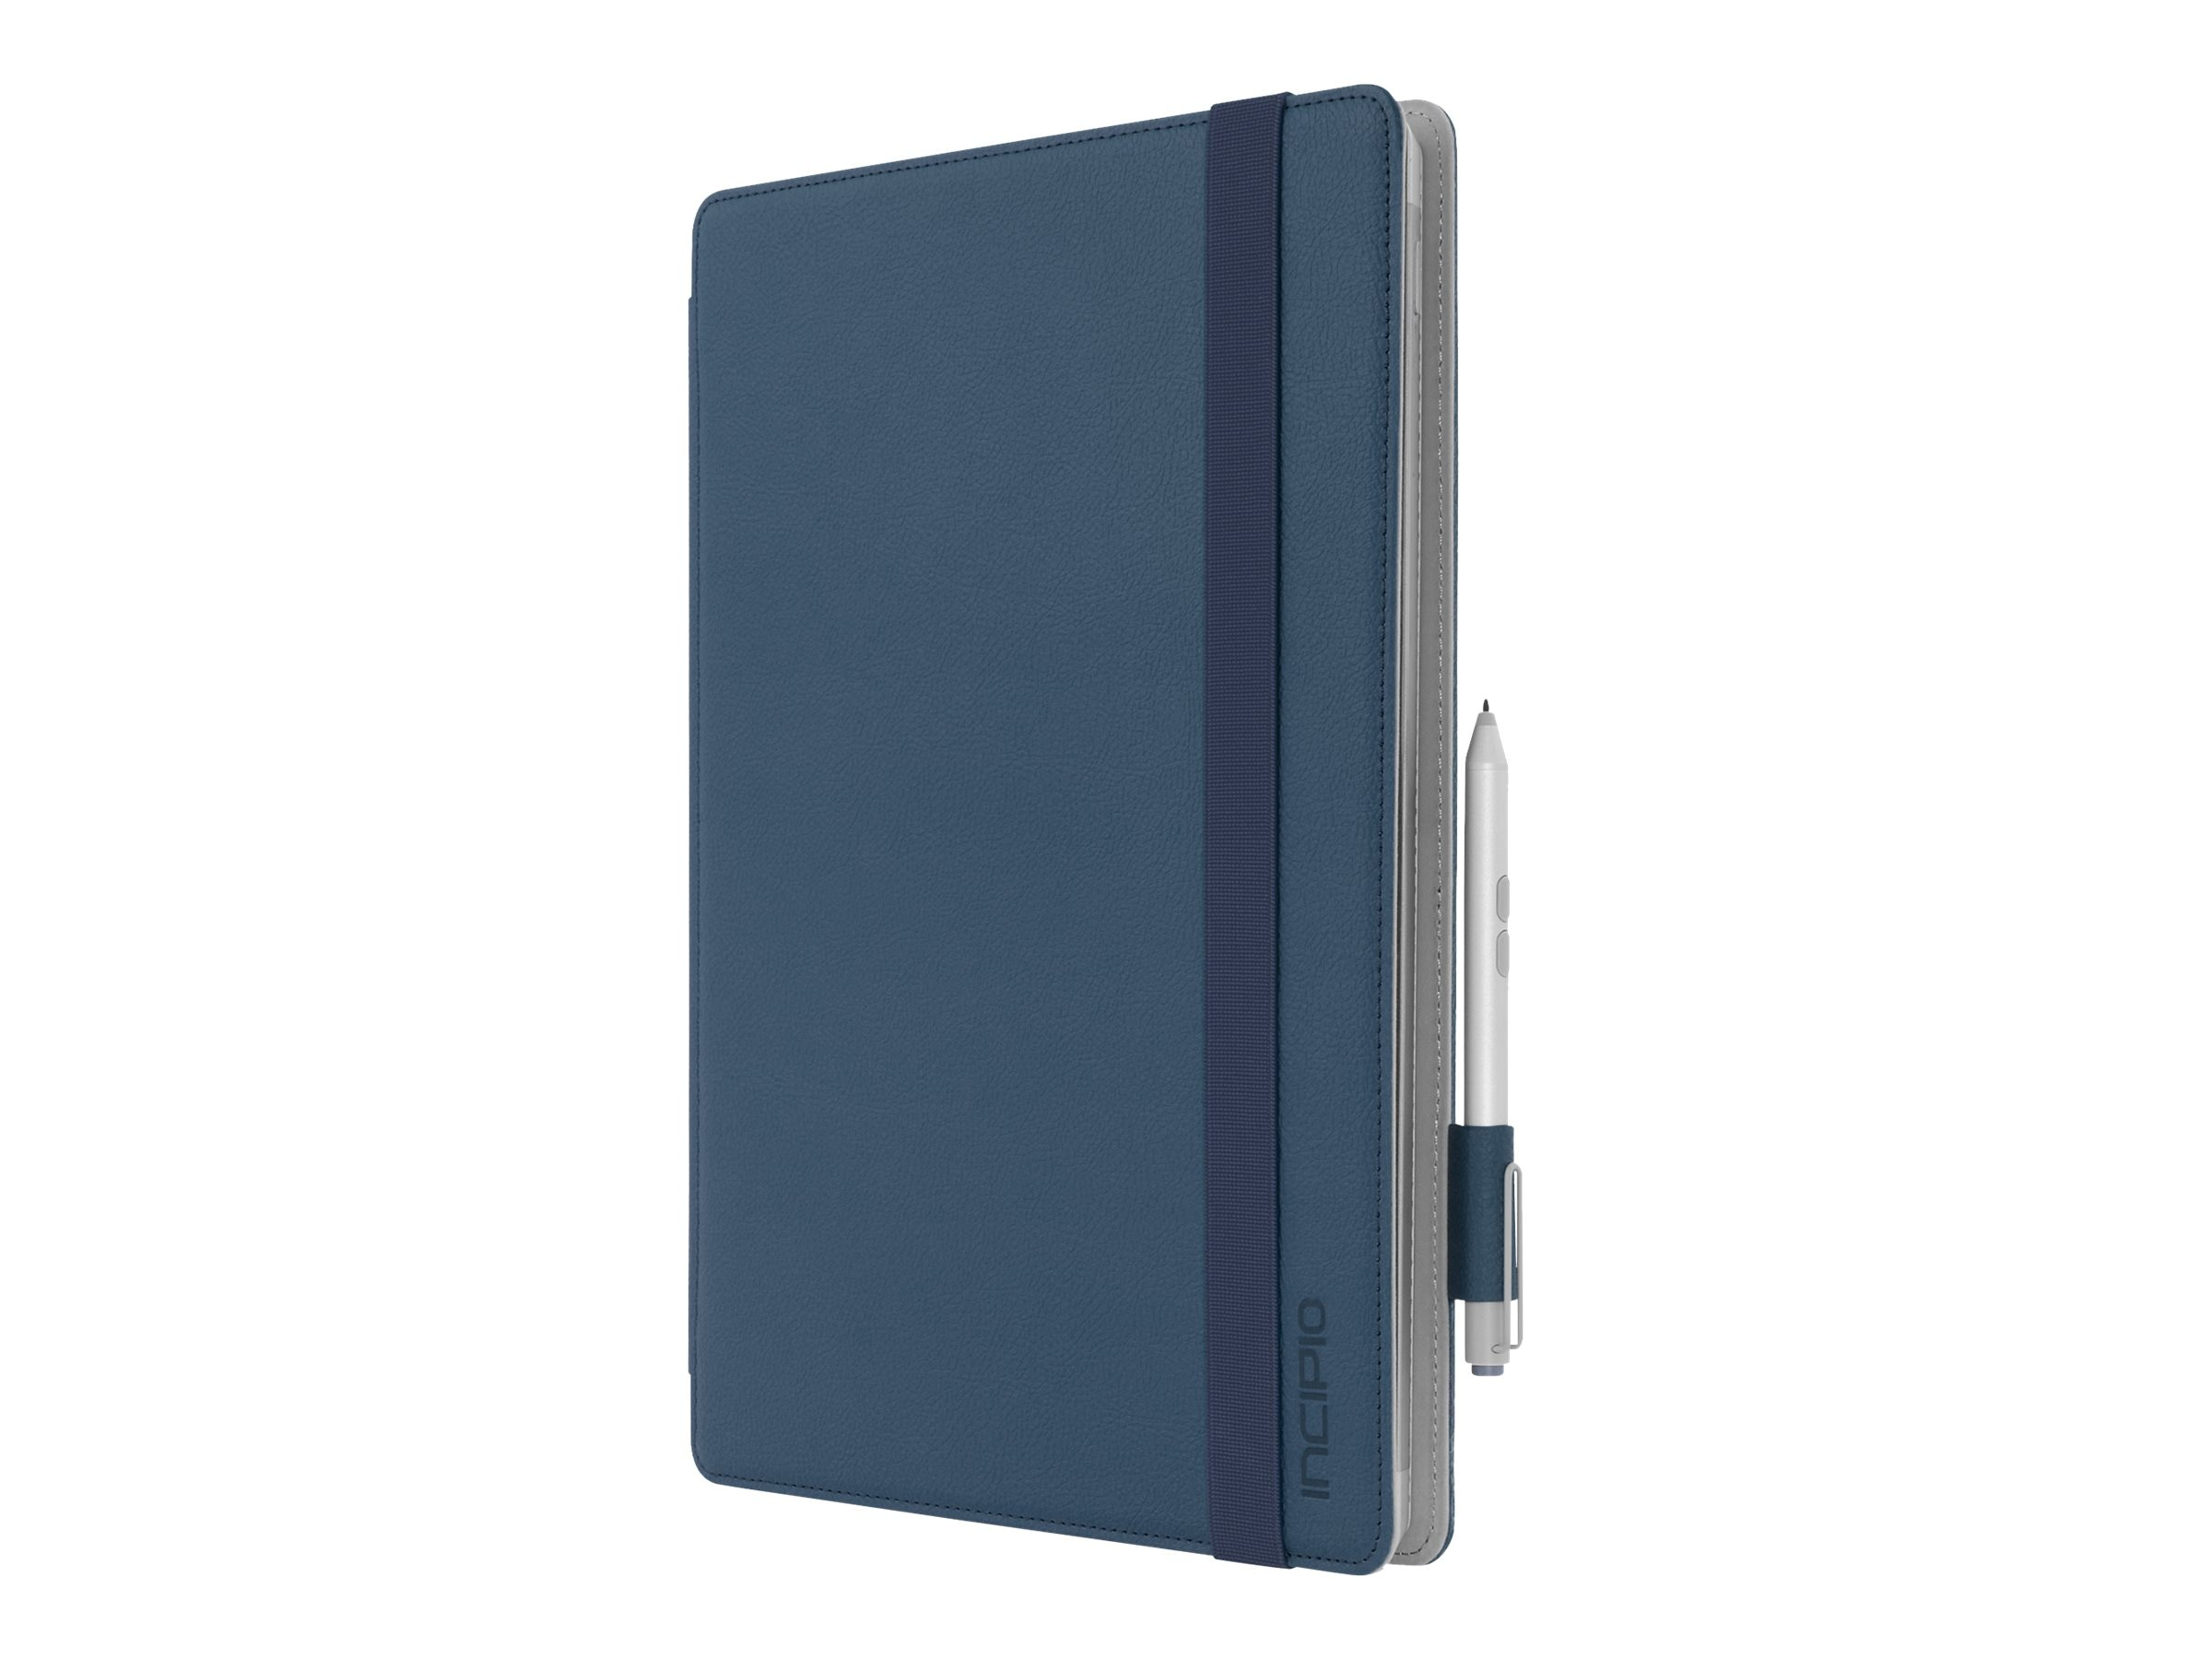 Incipio Roosevelt Slim Folio w  Snap-On Type Cover Compatibility for Microsoft Surface Pro 3 & 4, Blue, MRSF-070-BLU, 31201446, Carrying Cases - Tablets & eReaders